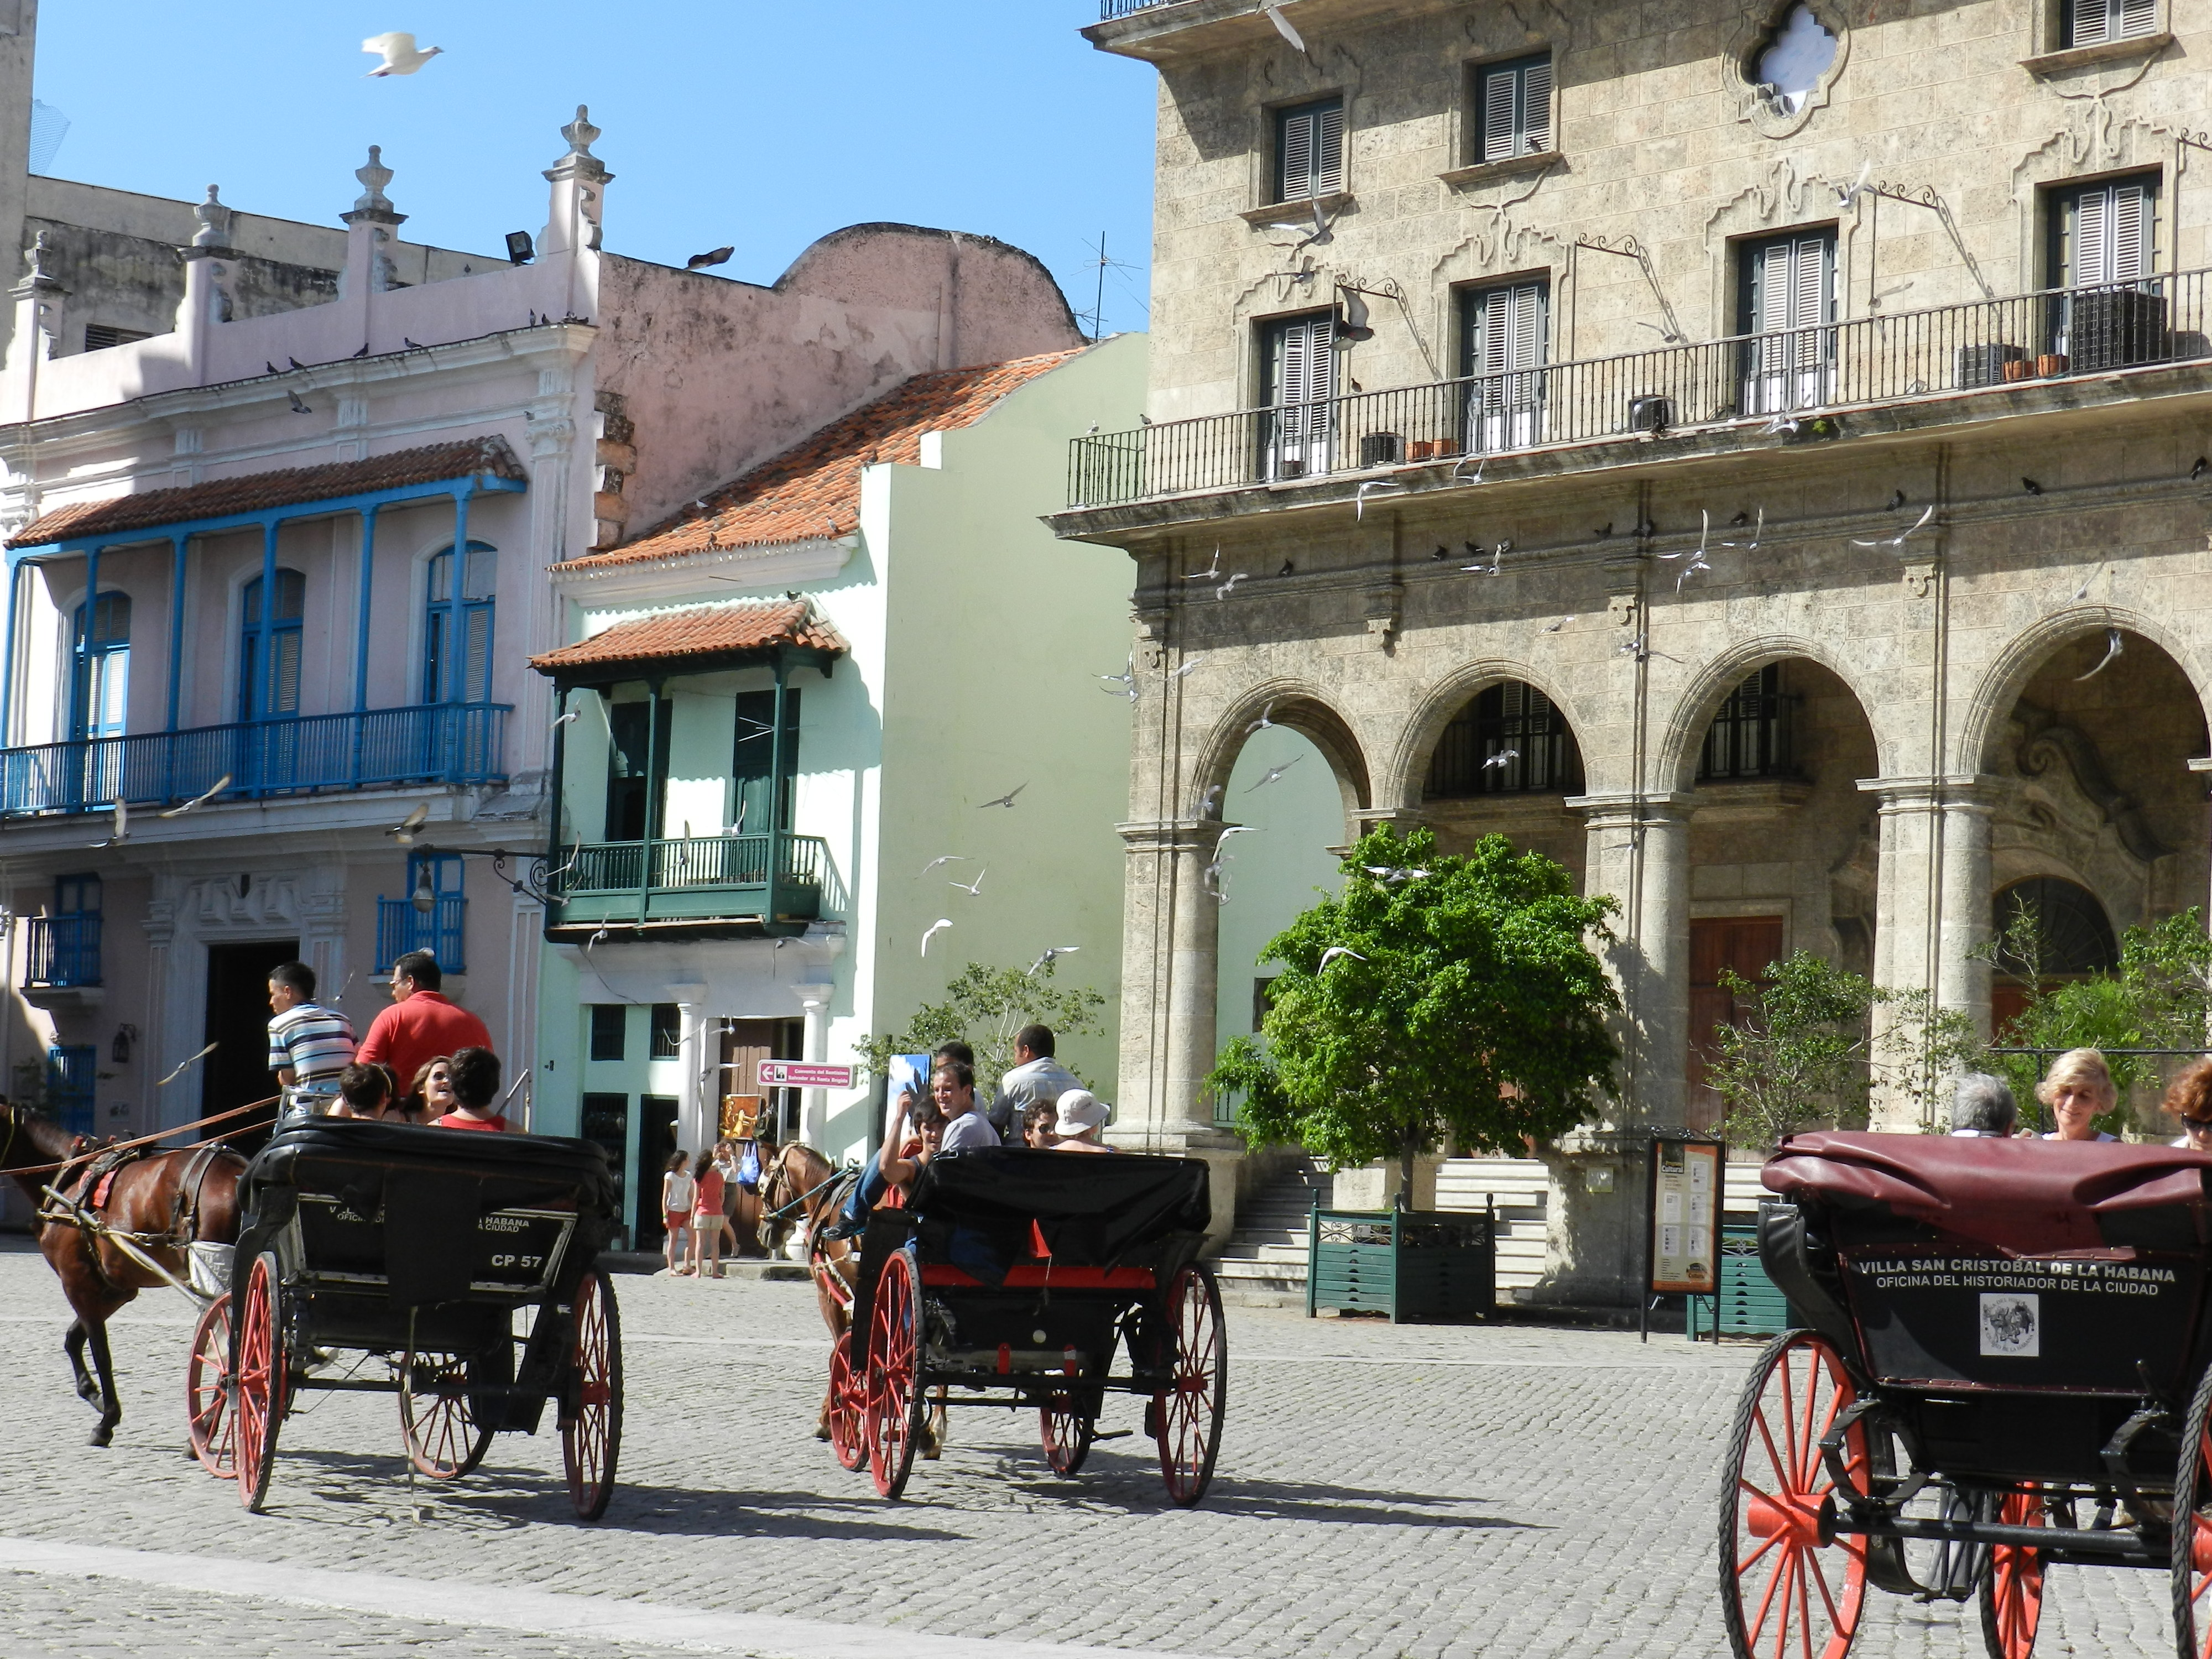 cuban city with horse and carriages